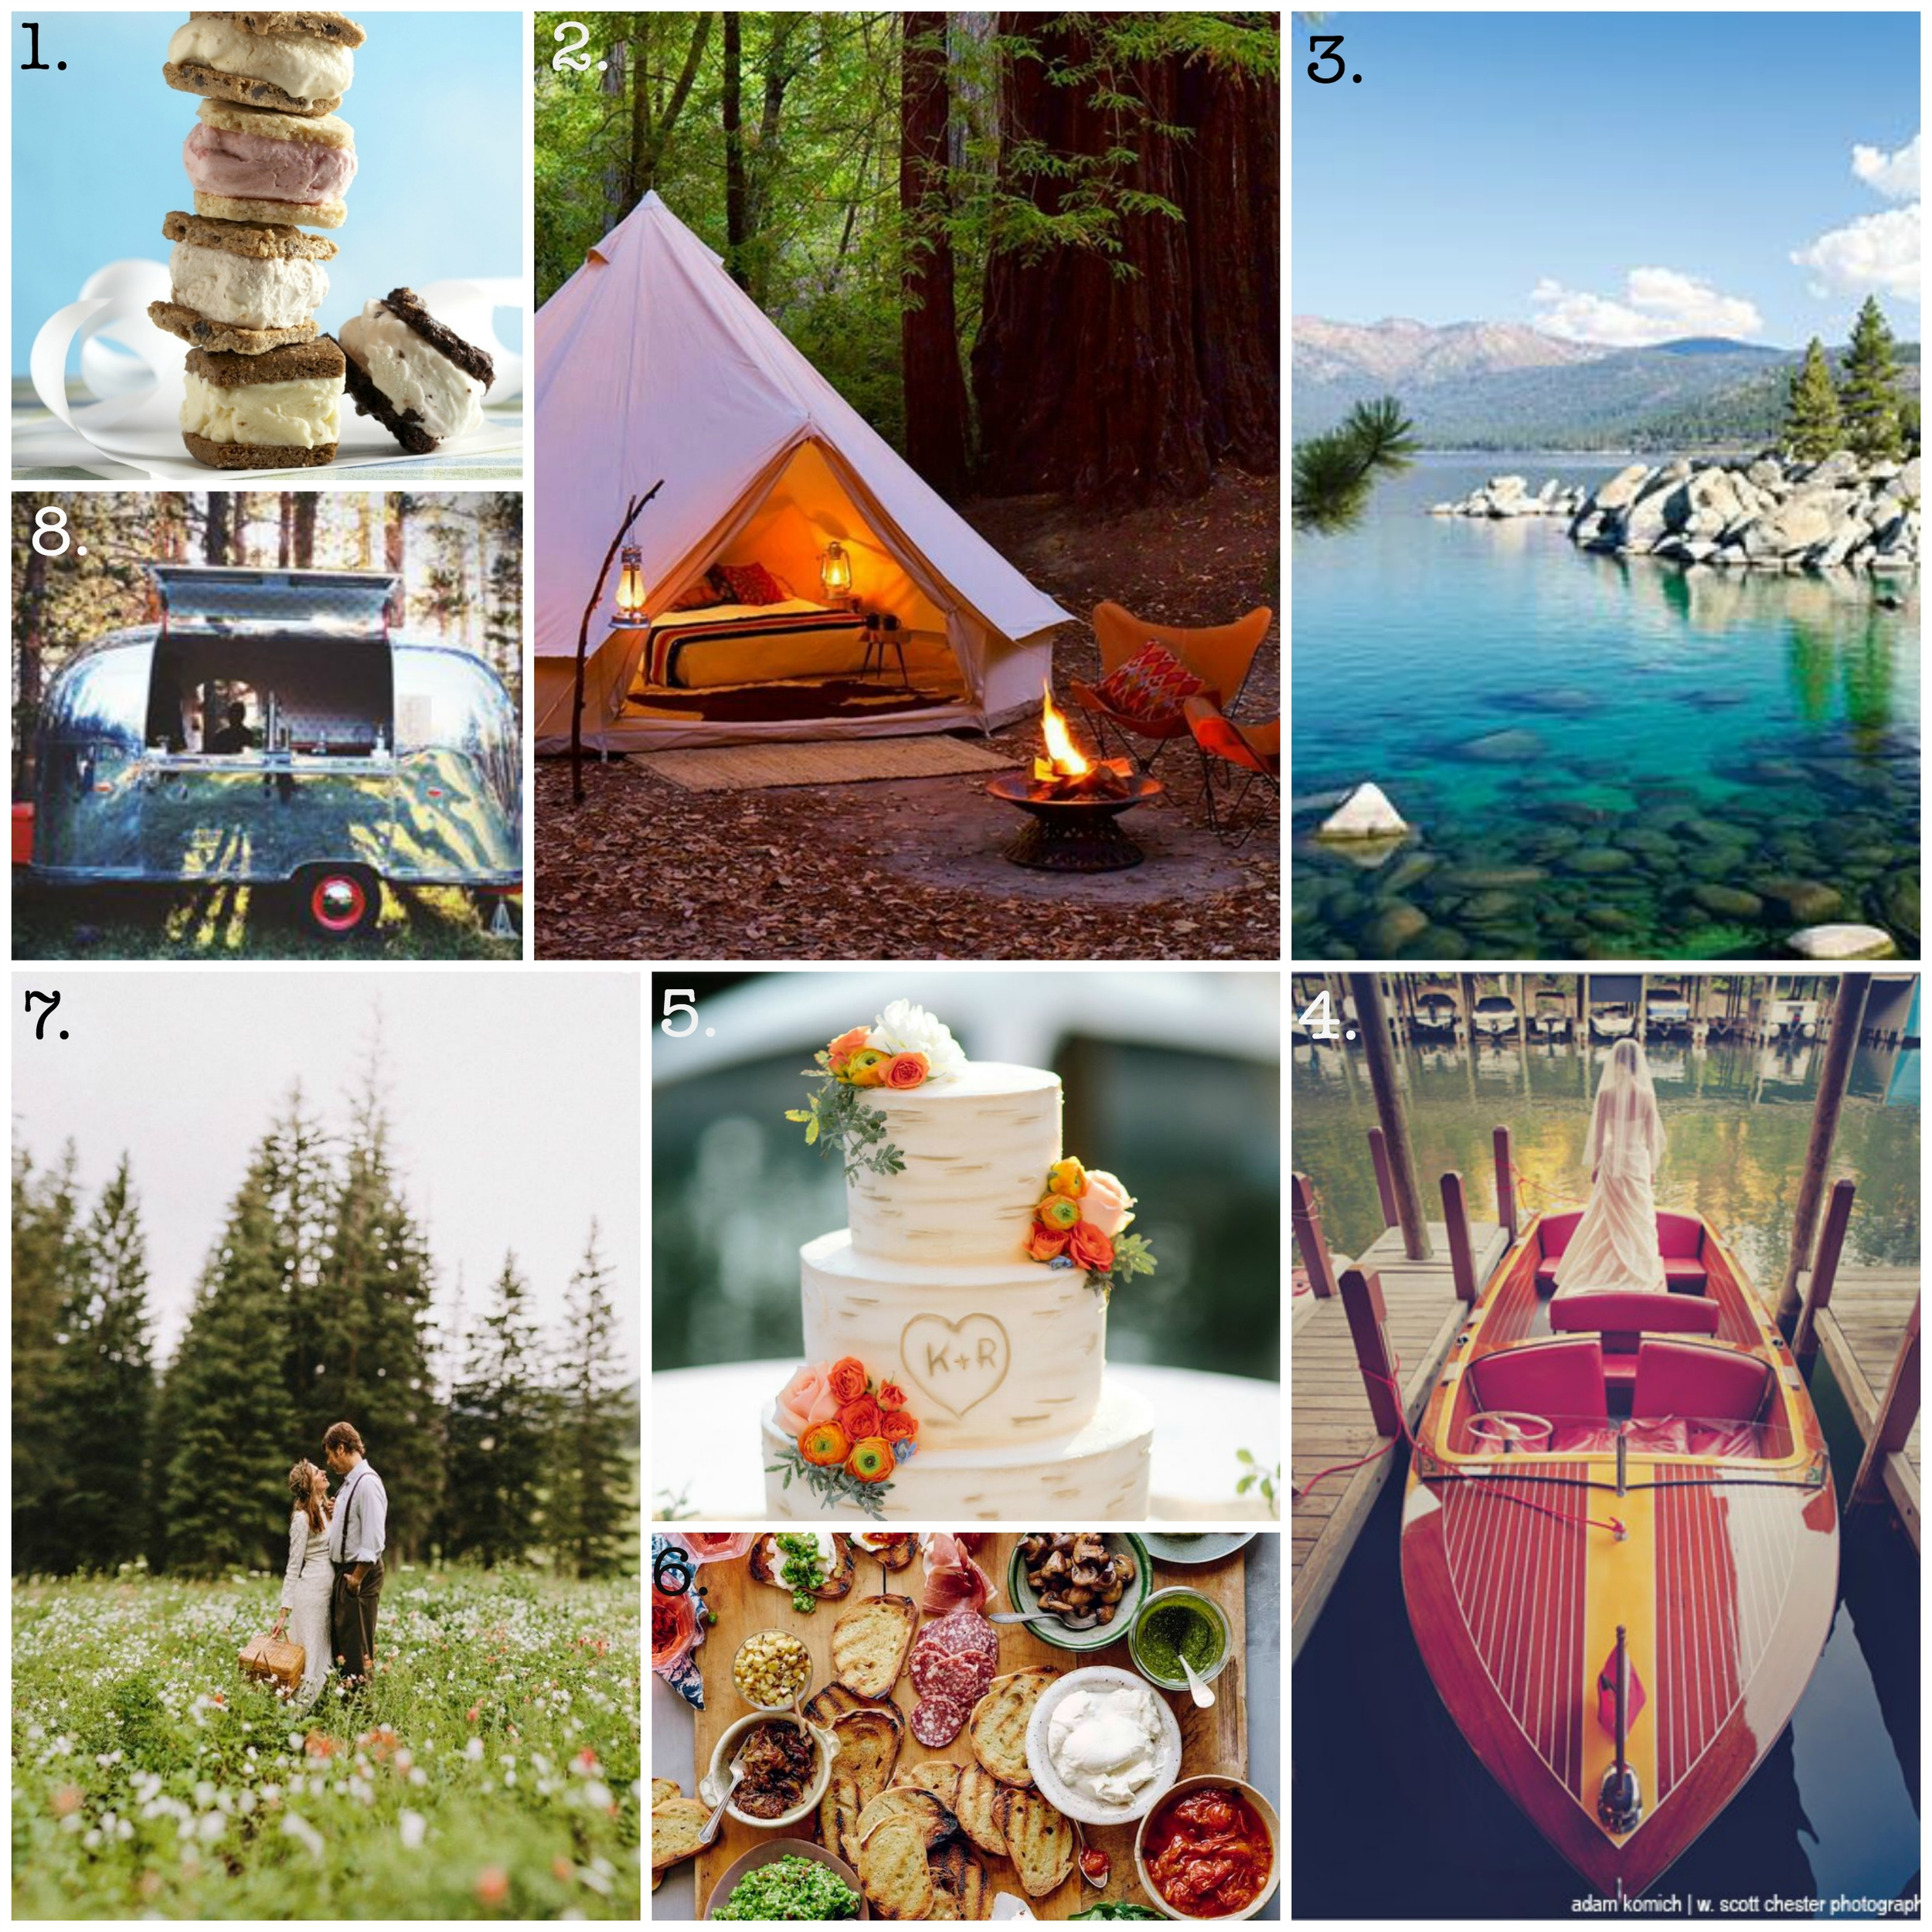 1. Keep your guests cool with delicious ice cream sandwiches from  Coolhaus  2. Glamp it up out in the woods in a well-appointed tent form  Shelter Co . 3.  Sunset wine and cheese cruise  to Emerald Bay. Rehearsal dinner - check!  4. Make your get-away across the lake in vintage style on a Chris-Craft boat 5. A faux birch bark cake gives a nod to the woodsy setting. Photo:  Troy Grover  6. Two words:  bruschetta bar . The folks at Shelter Co. are geniuses. Photo:  Matt Armendariz  7. Go frolic in a field of flowers with your betrothed. Capture it on film. Photo:  Dylan and Sara Photography  8. Hire  Camper Cocktails  to show up in their Airstream trailor and make craft cocktails for your guests